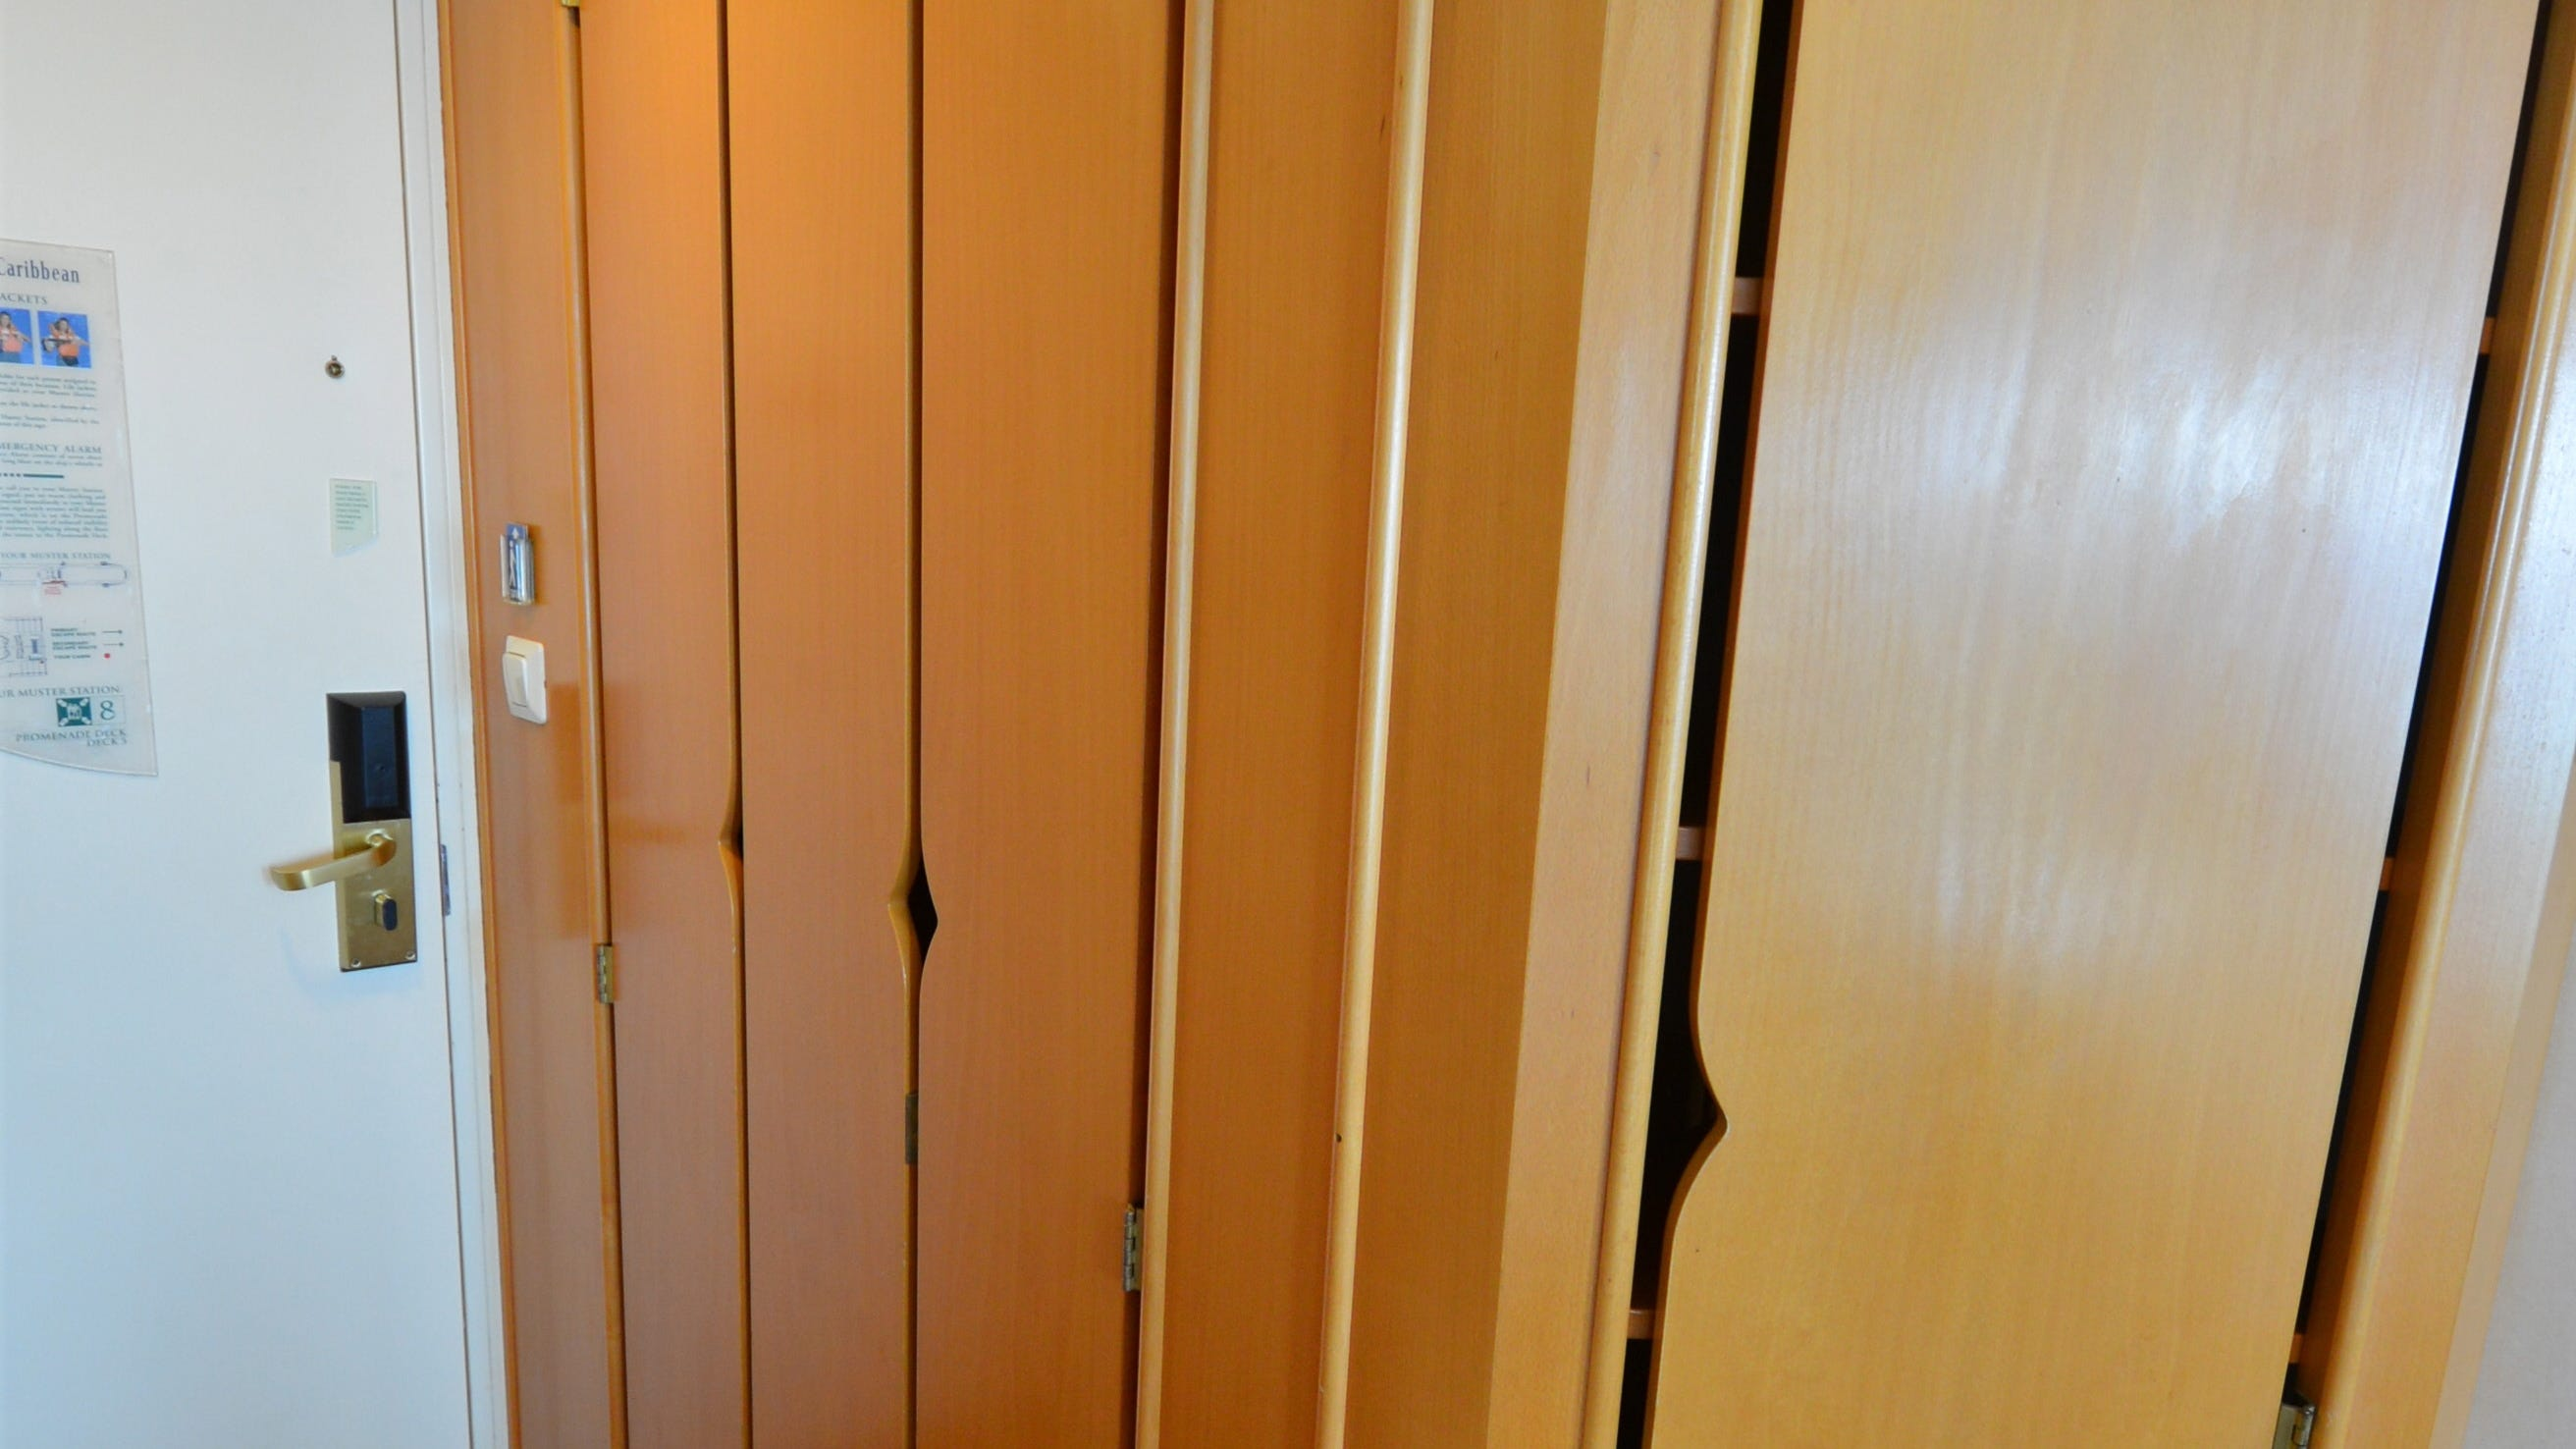 Ocean View cabins feature large, floor-to-ceiling closet areas.